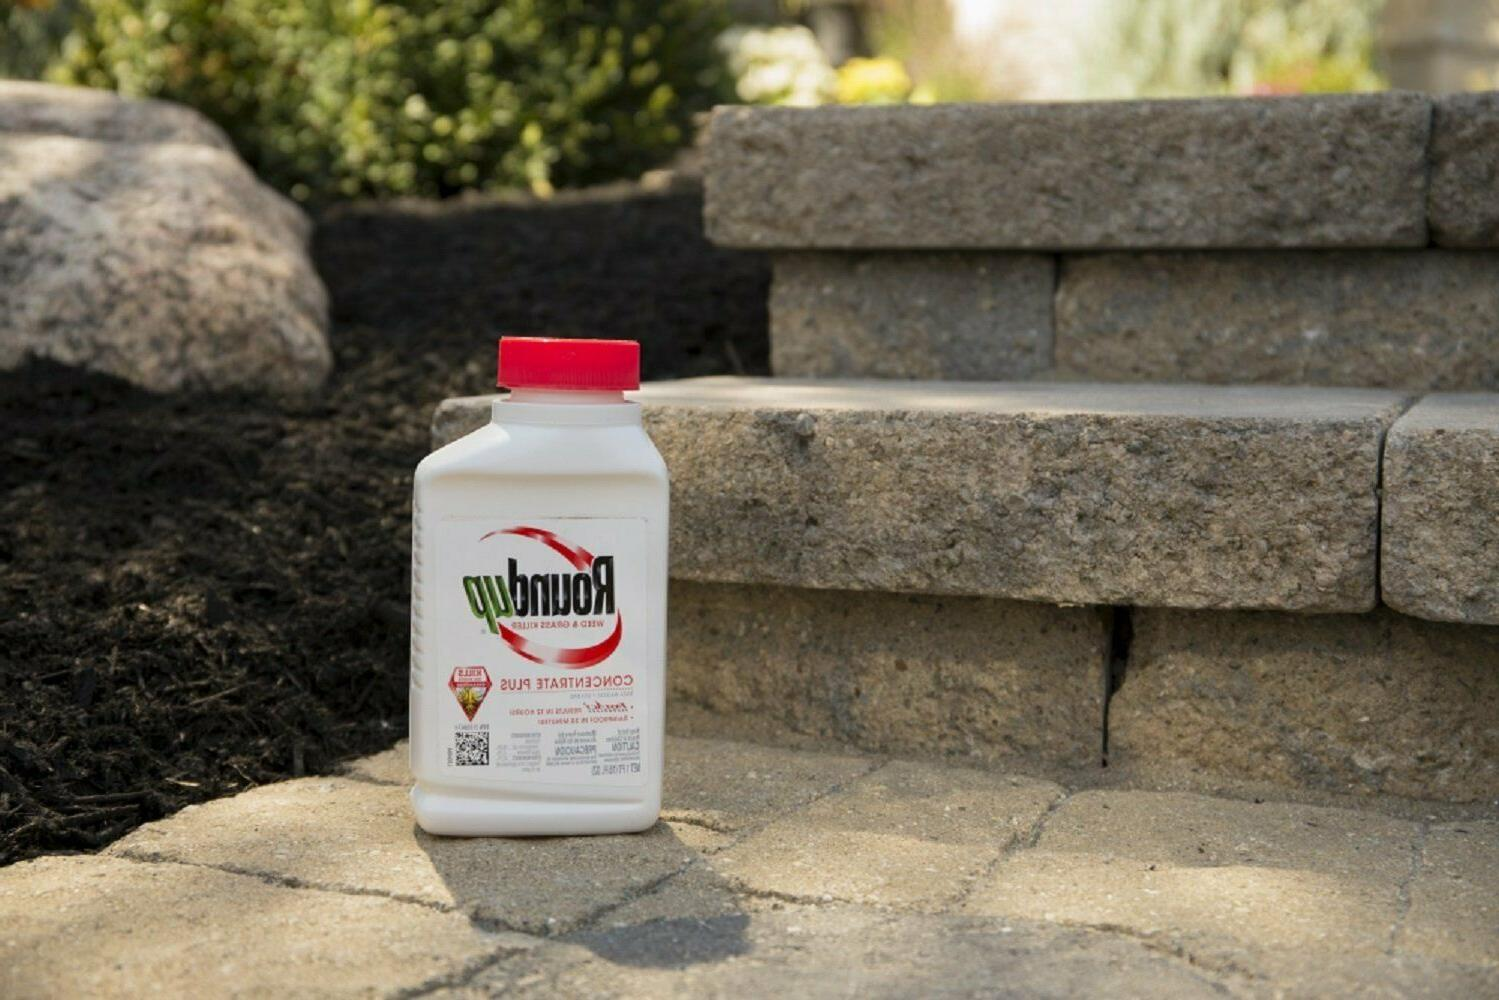 Roundup Weed and Killer